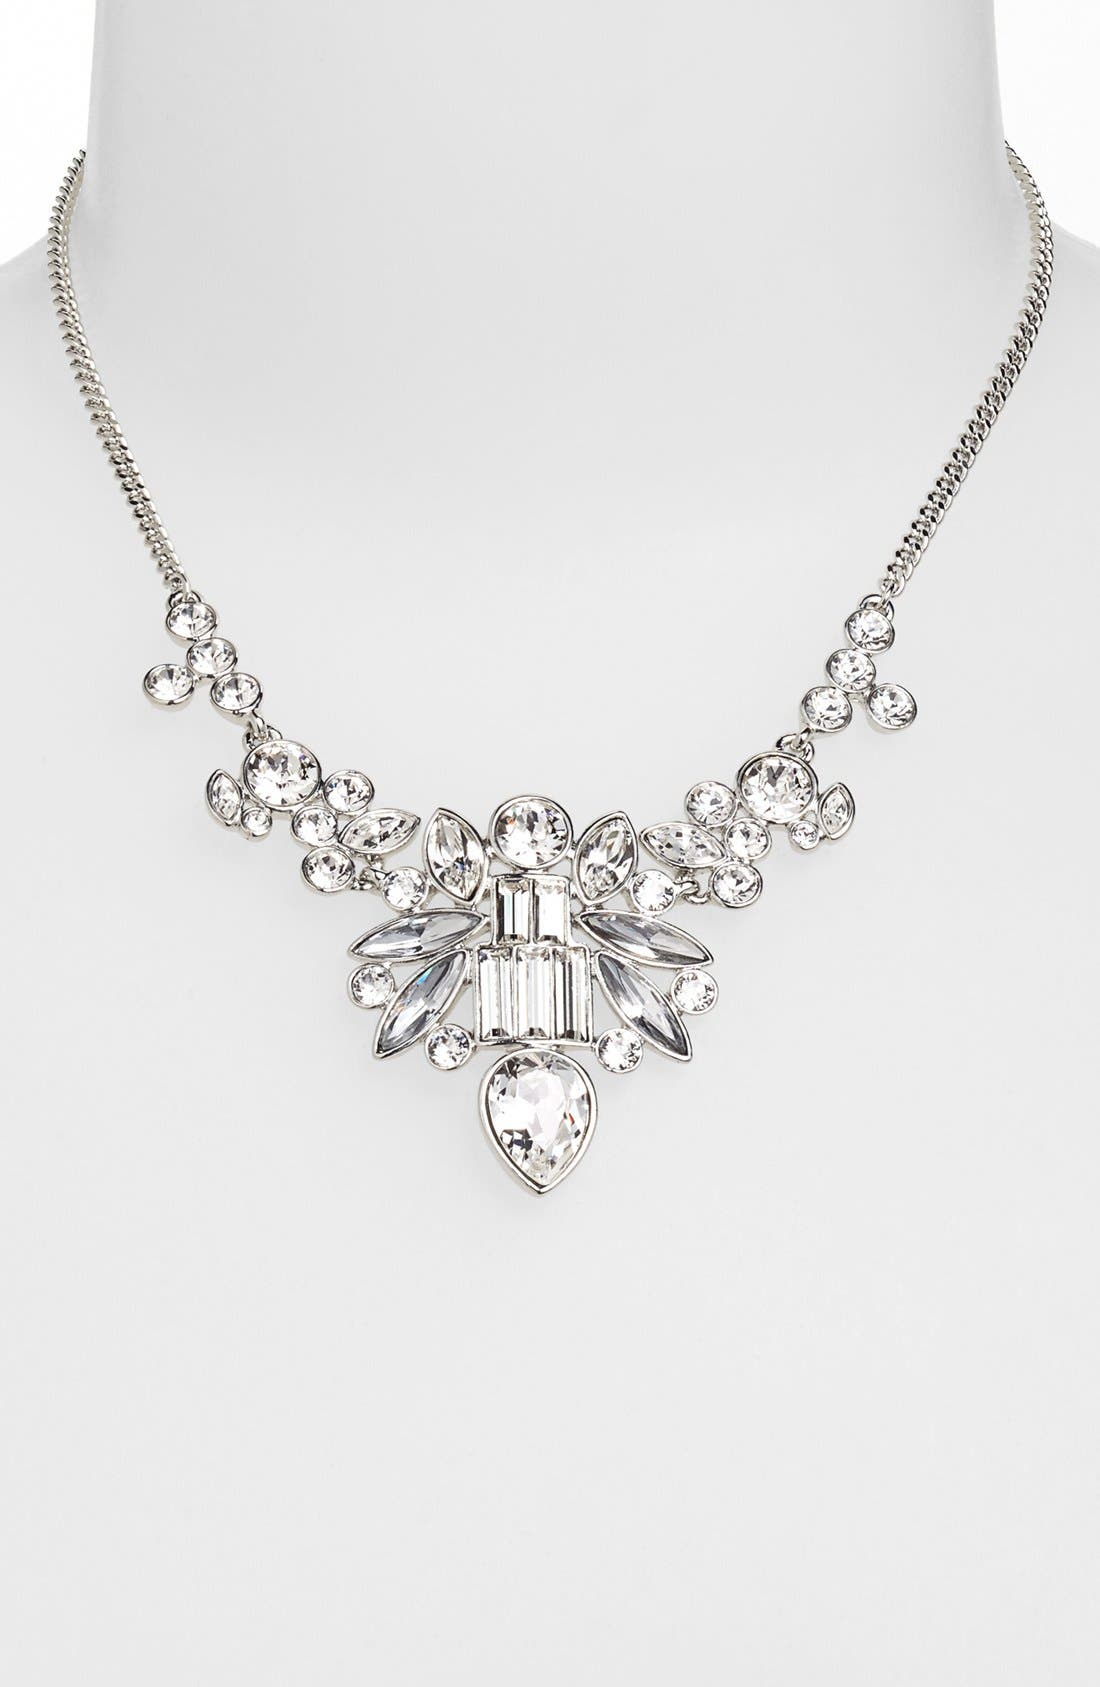 Alternate Image 1 Selected - Givenchy Crystal Bib Necklace (Nordstrom Exclusive)